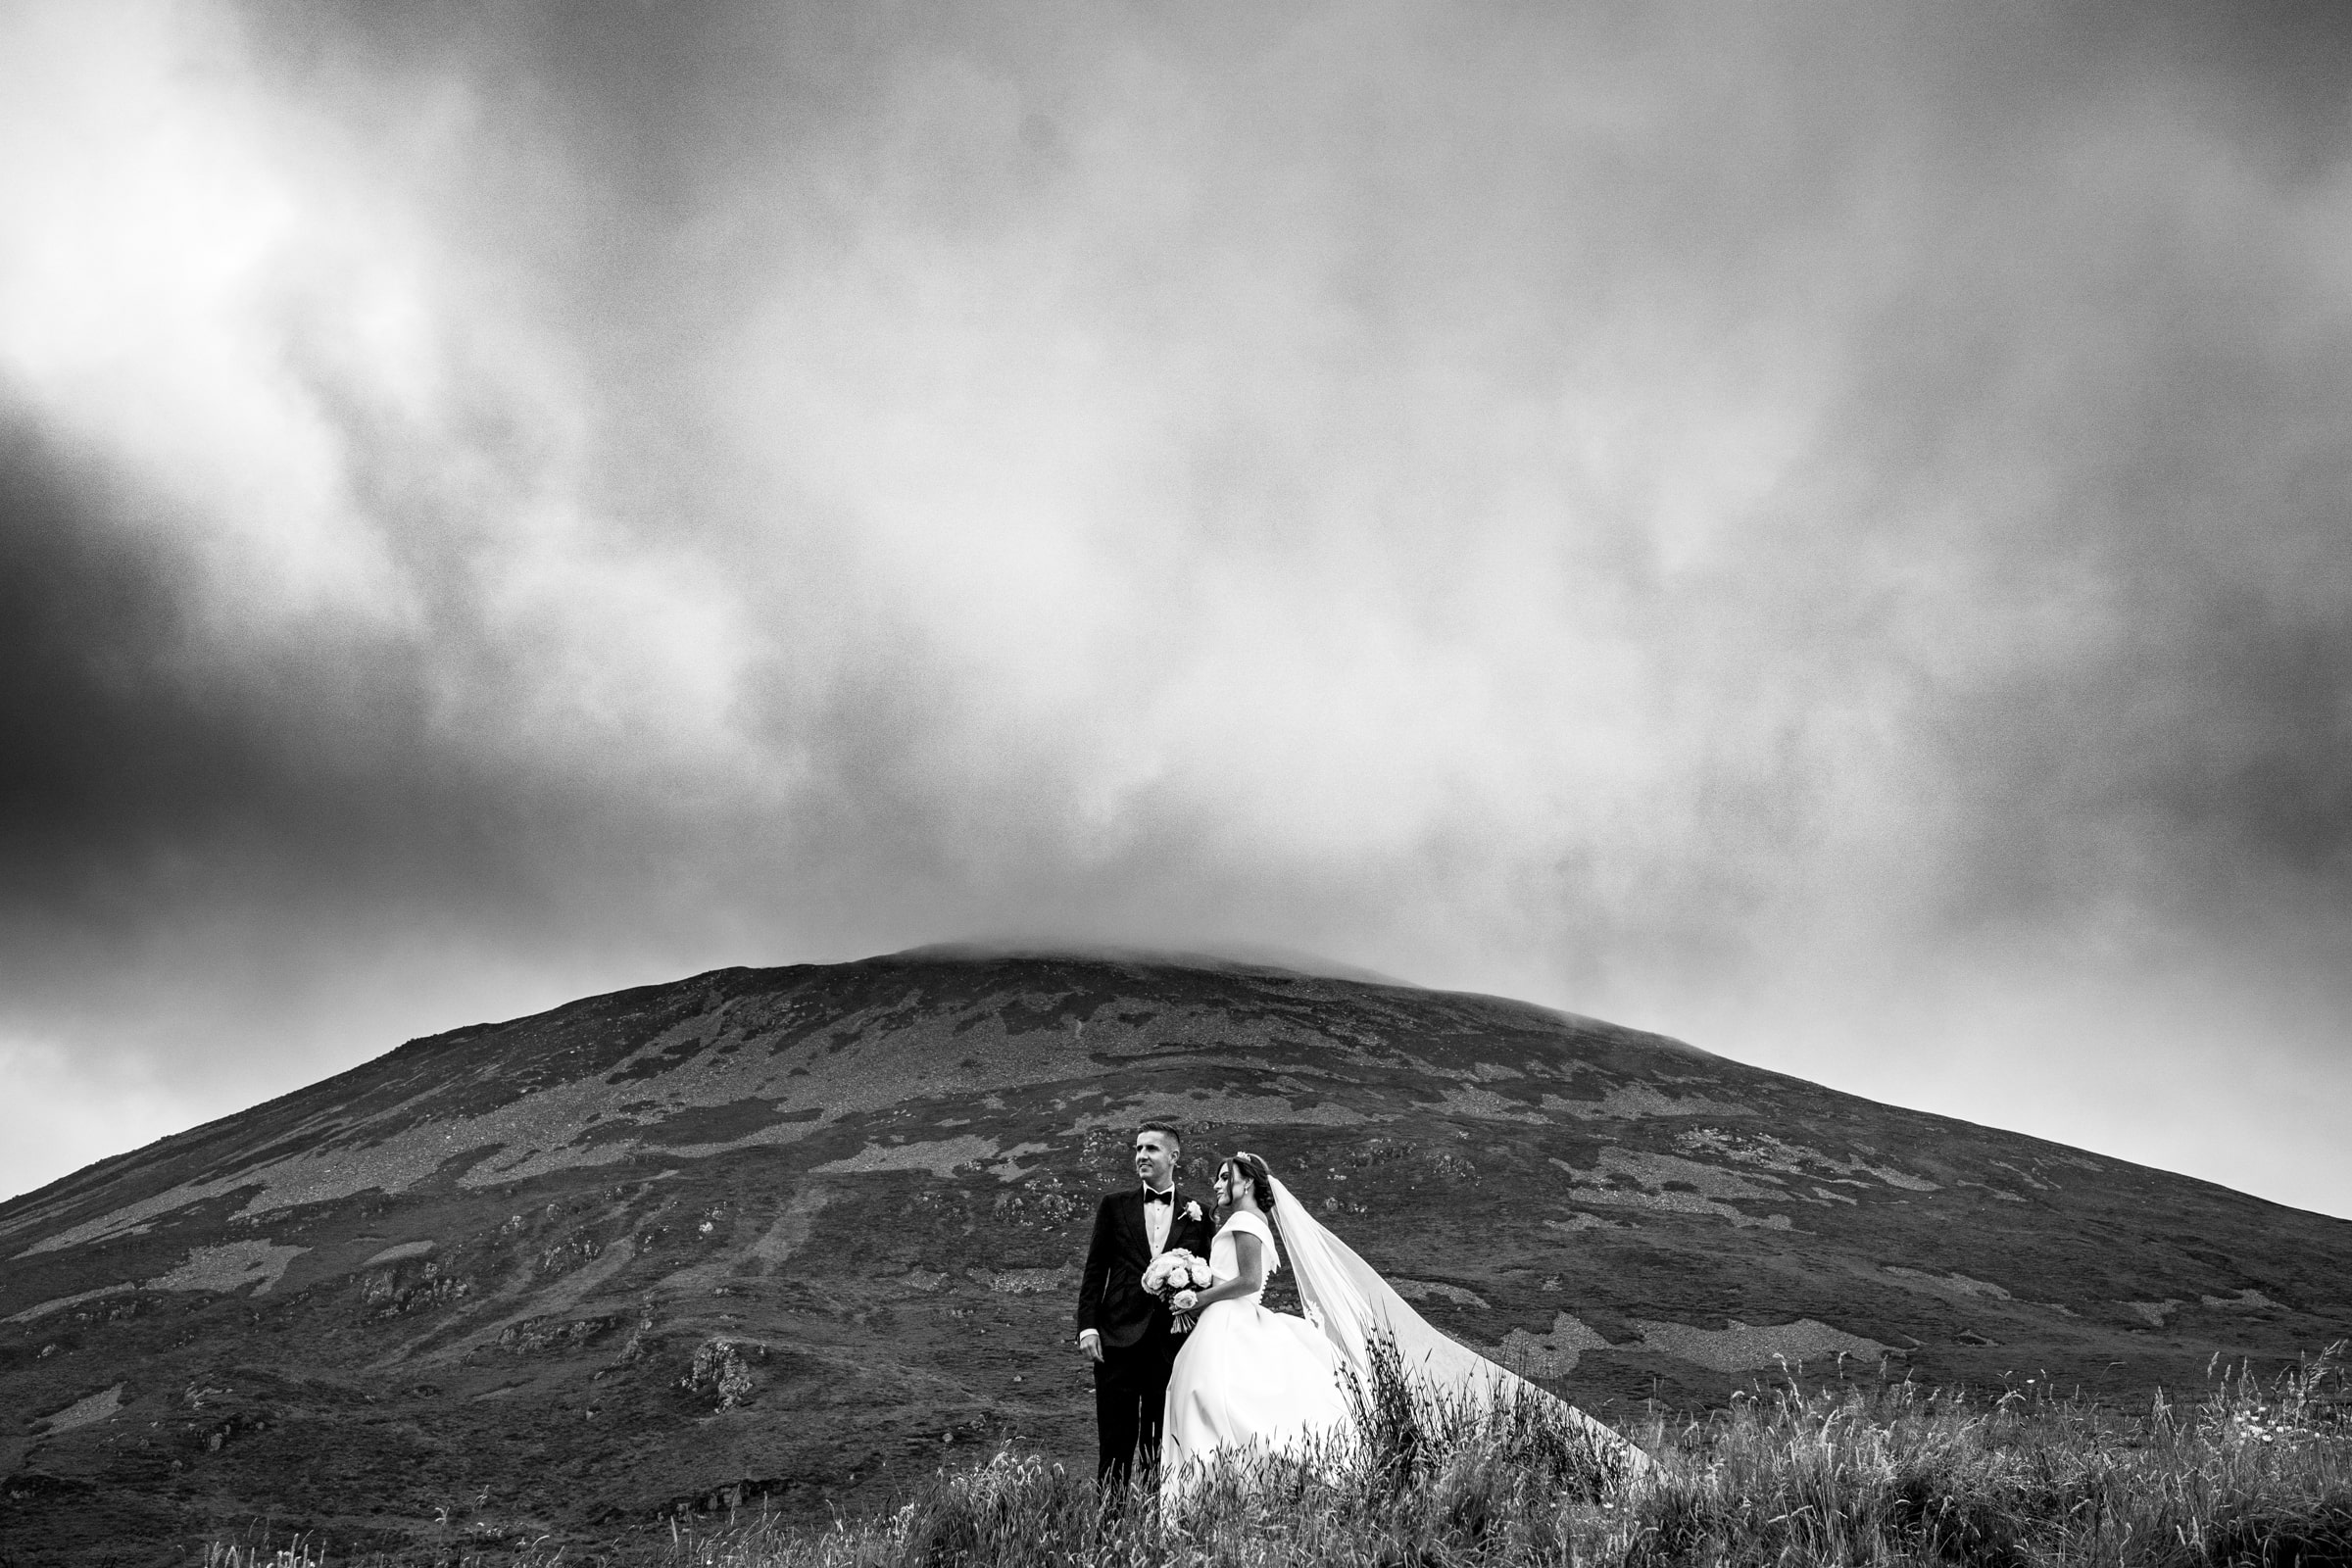 silver Tassie hotel wedding, donegal wedding venue, photographer donegal, bride and groom in the Poisoned Glen with Mount Errigal in the background, photo by Paul McGinty from Ghorm Studio photography Lough Eske.